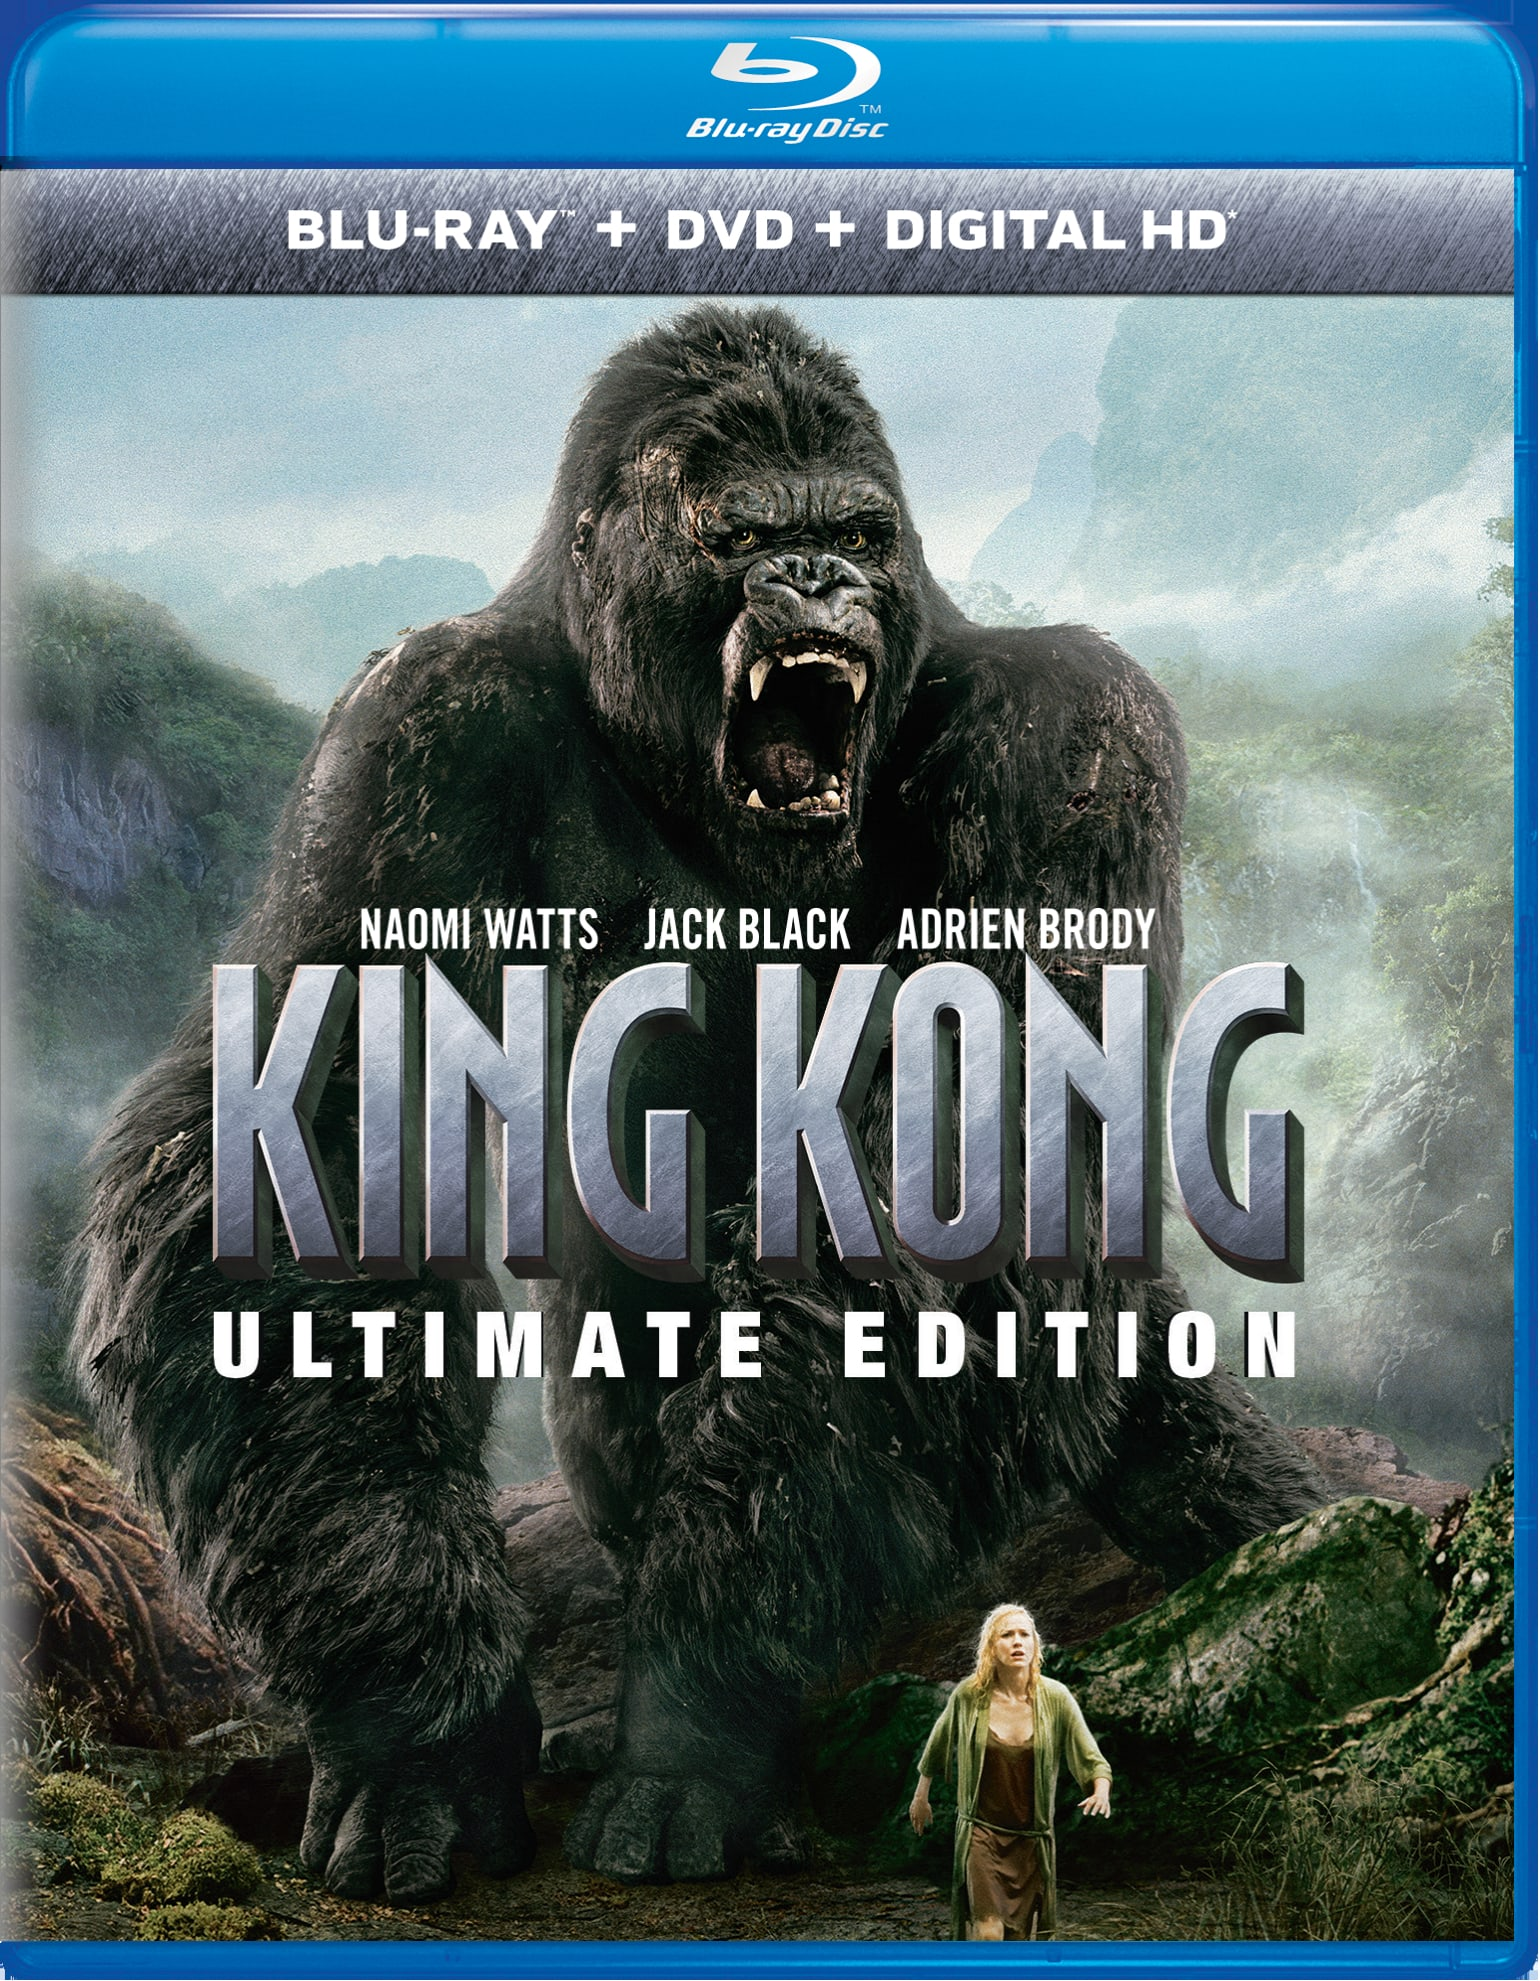 King Kong (Ultimate Edition DVD + Digital) [Blu-ray]